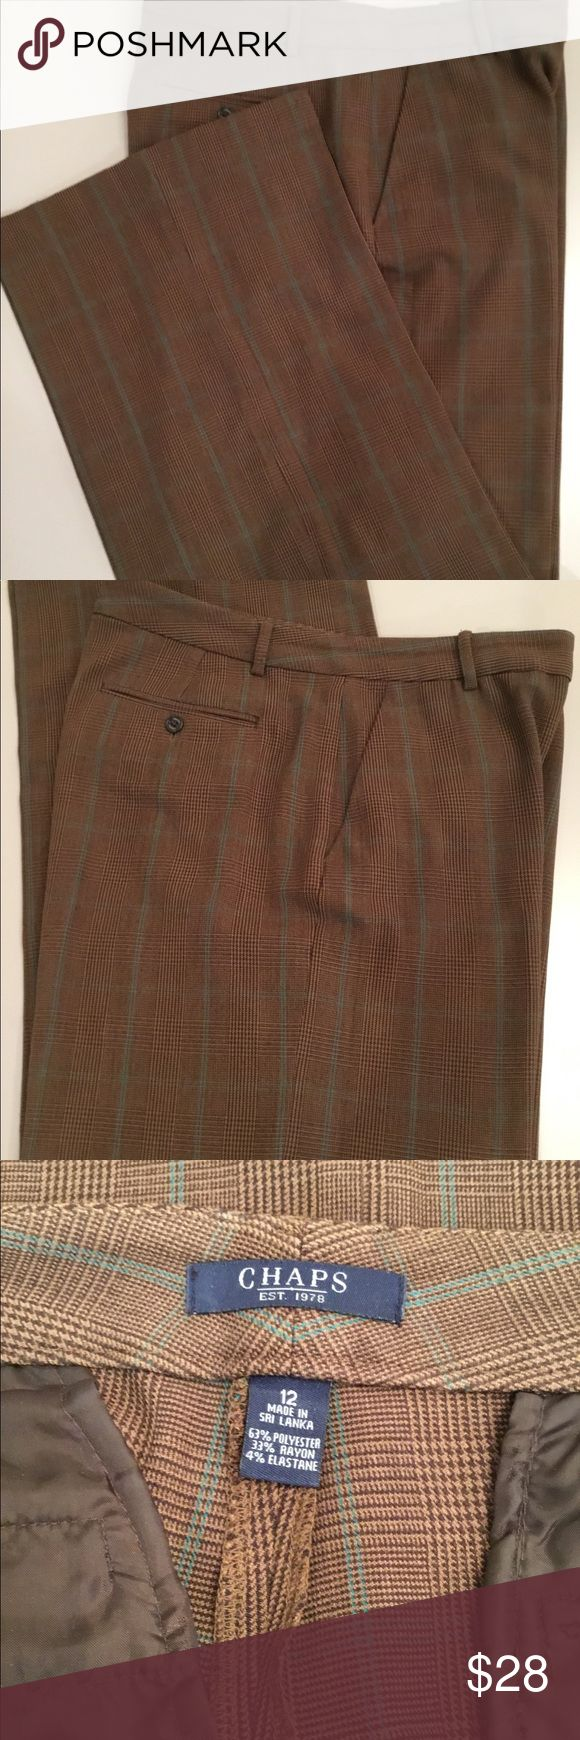 """Chaps brown Slacks Chaps brown with slight green stripes, Slacks. Size 12.   6"""" front zipper Double button closure. 2 front and 2 back pockets. Inseam 32"""" Chaps Pants"""